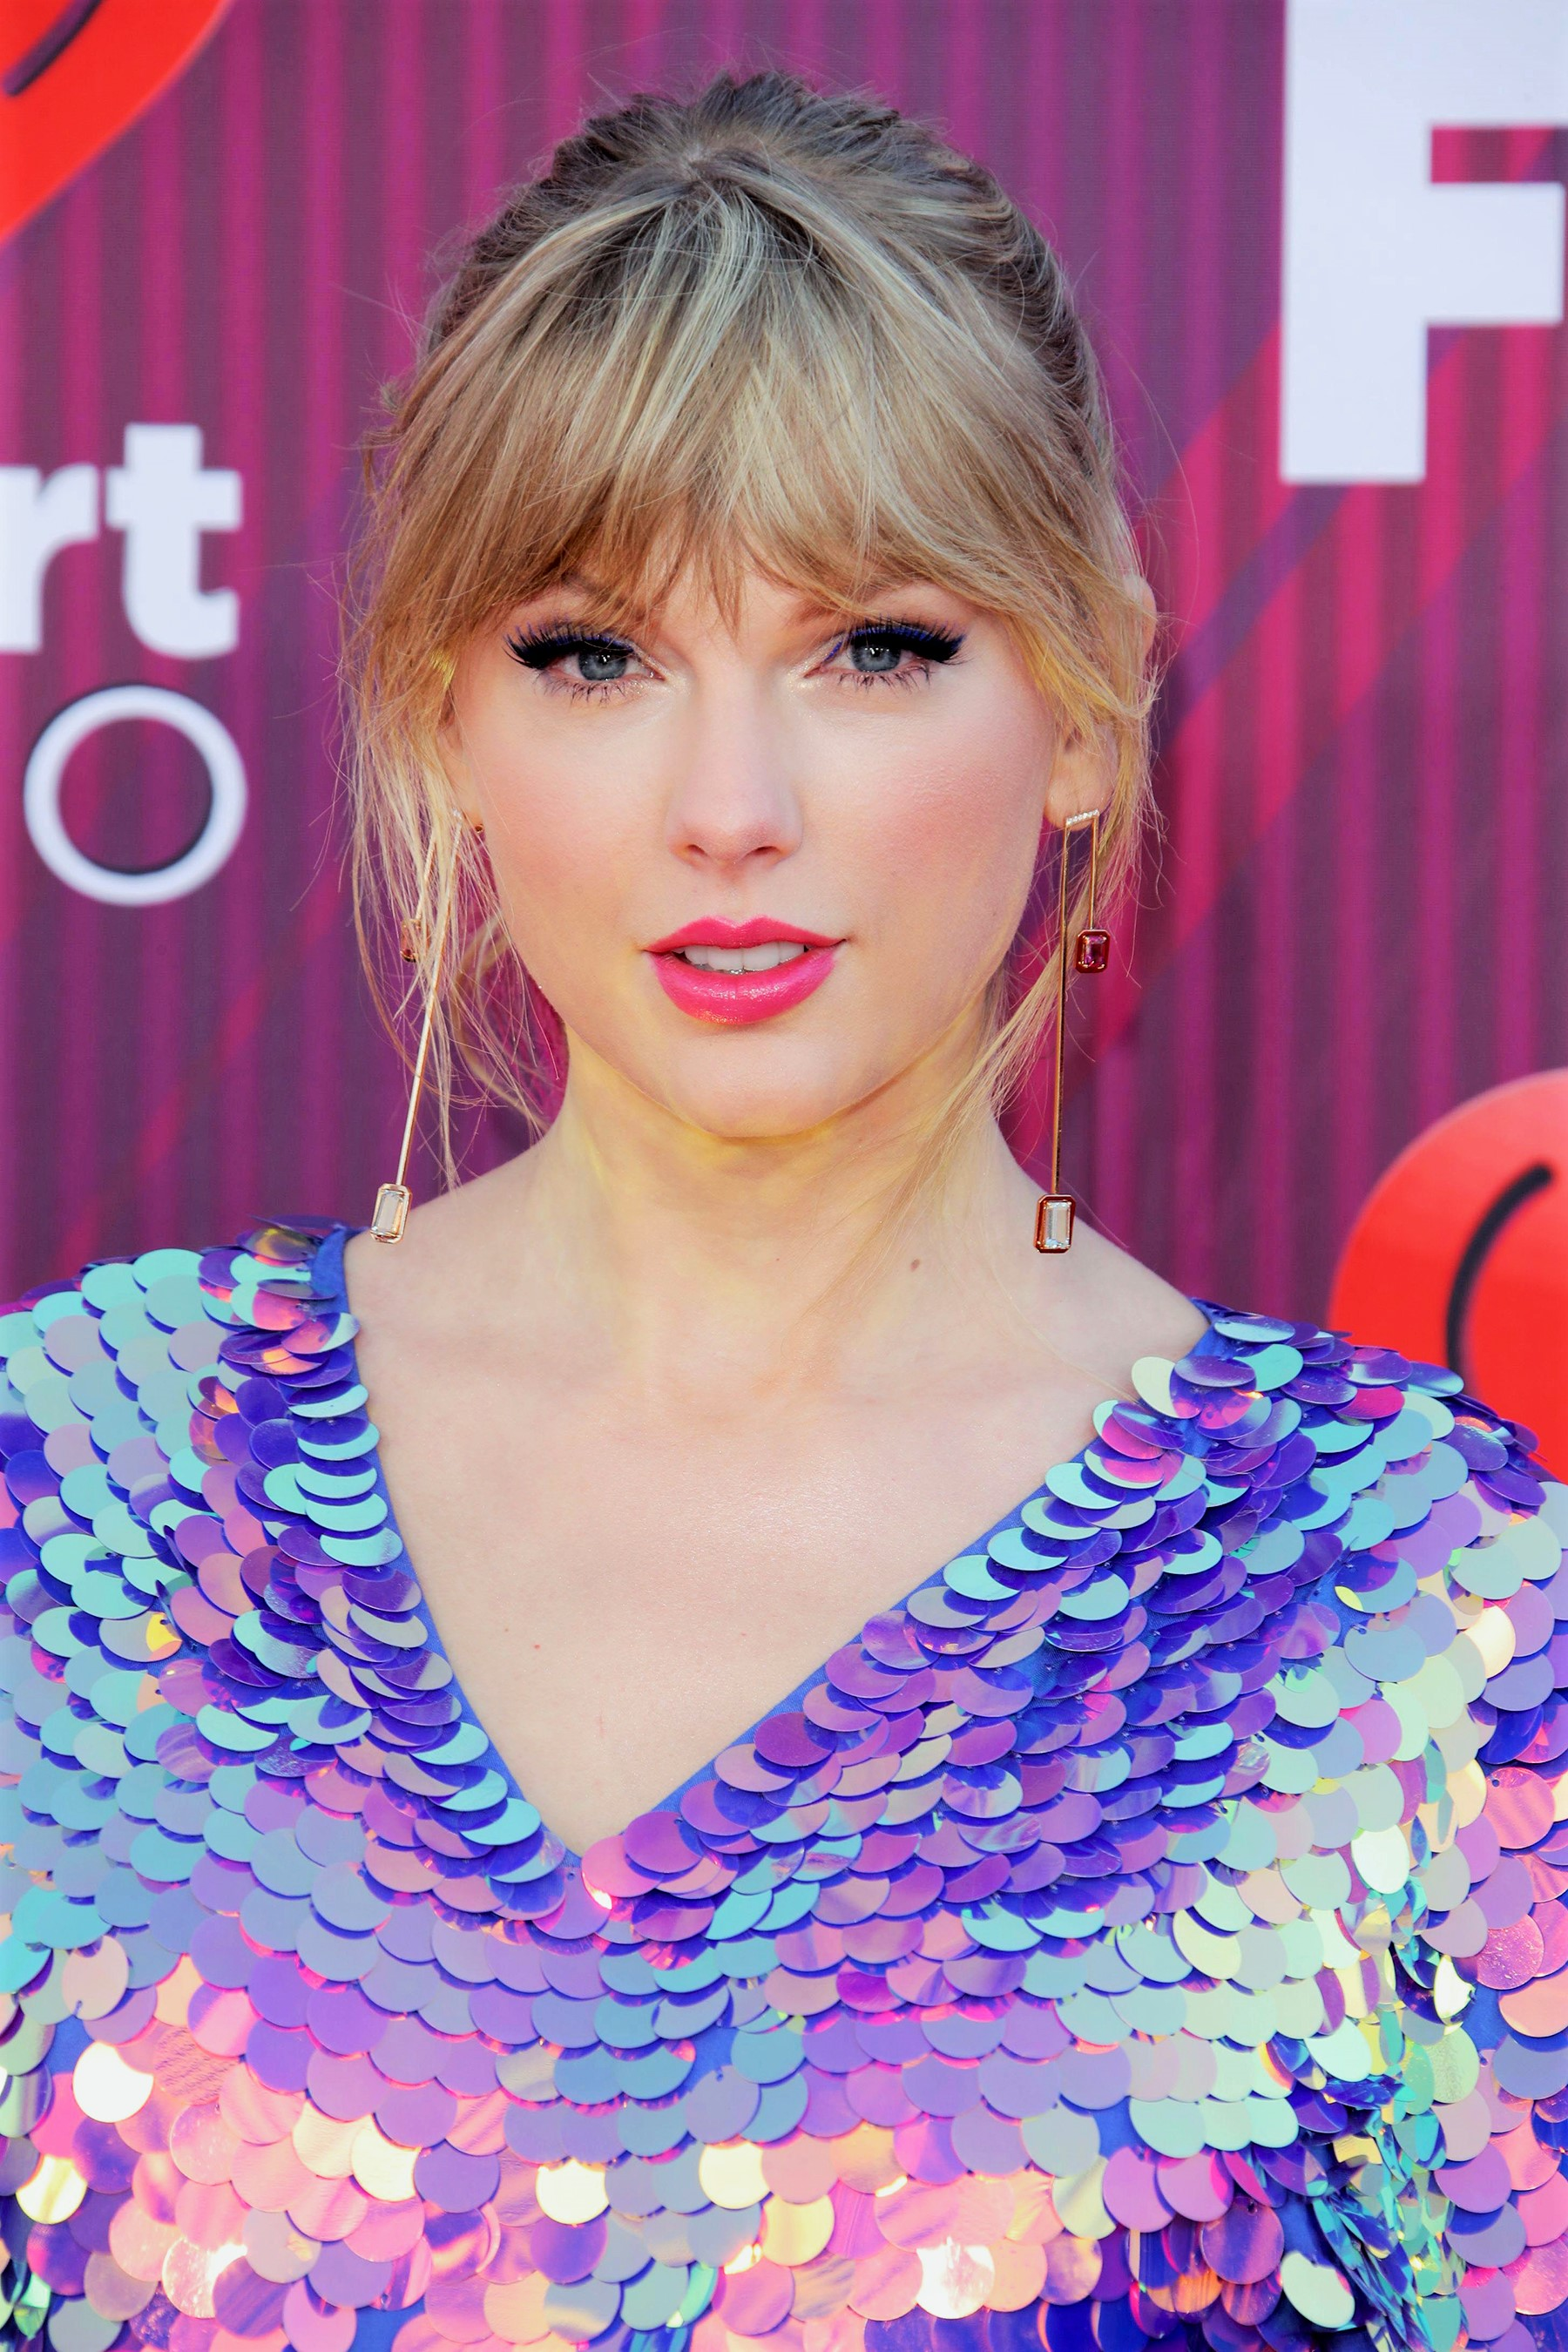 The Internet Is Coming to Taylor Swift's Defense After an Alt-Right Troll Tweeted About Her Egg Count